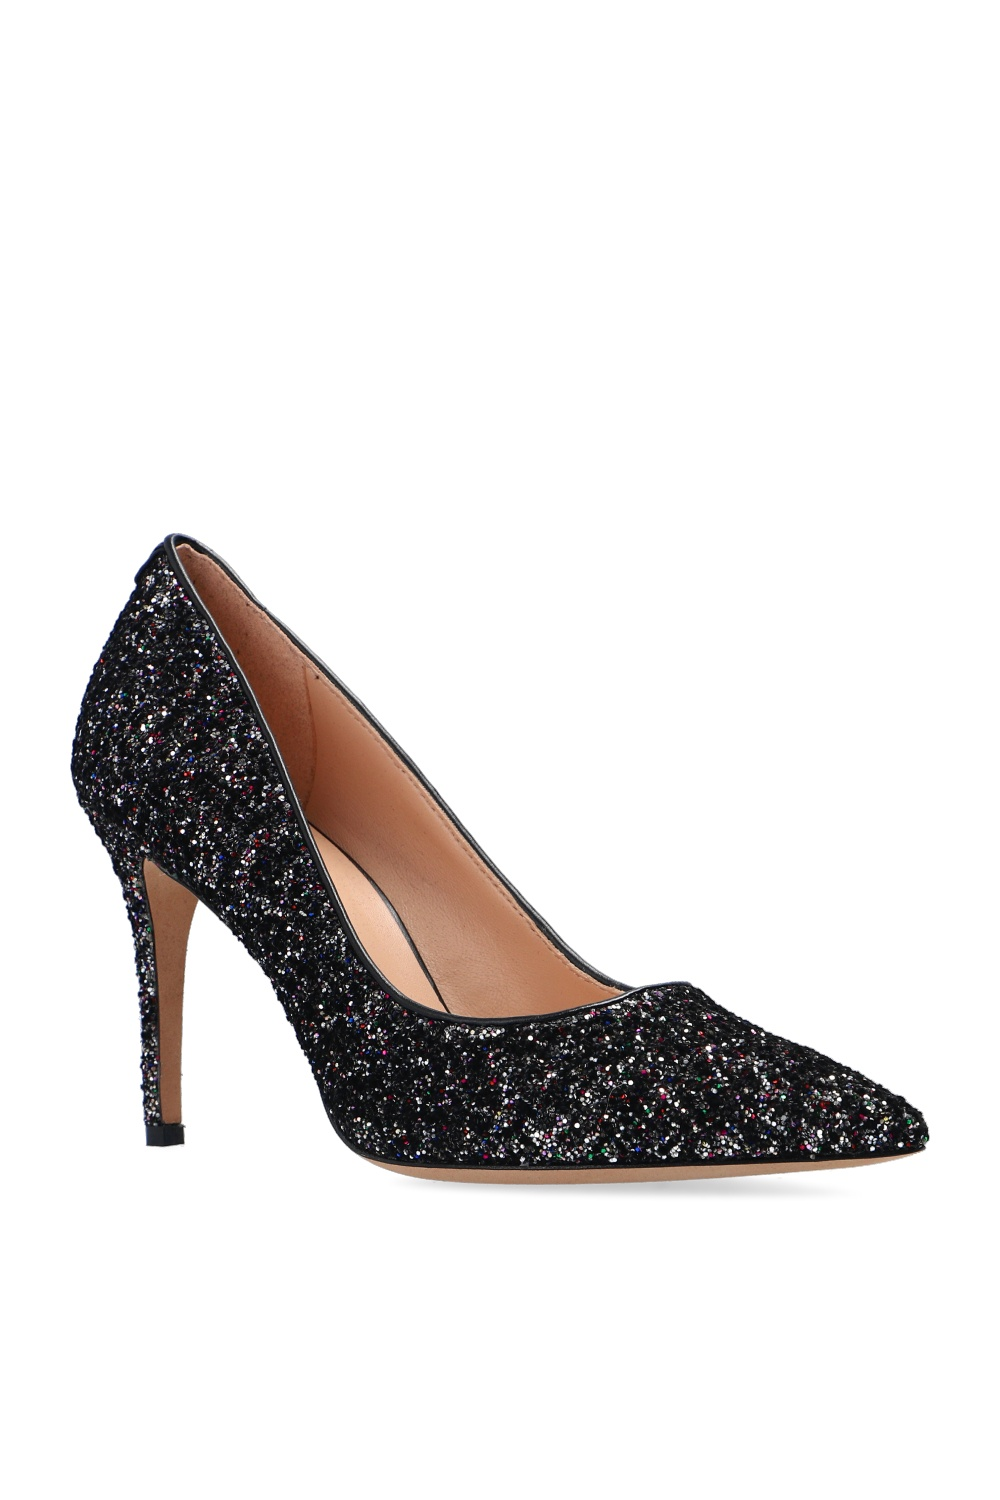 Kate Spade 'Valerie' leather stiletto pumps